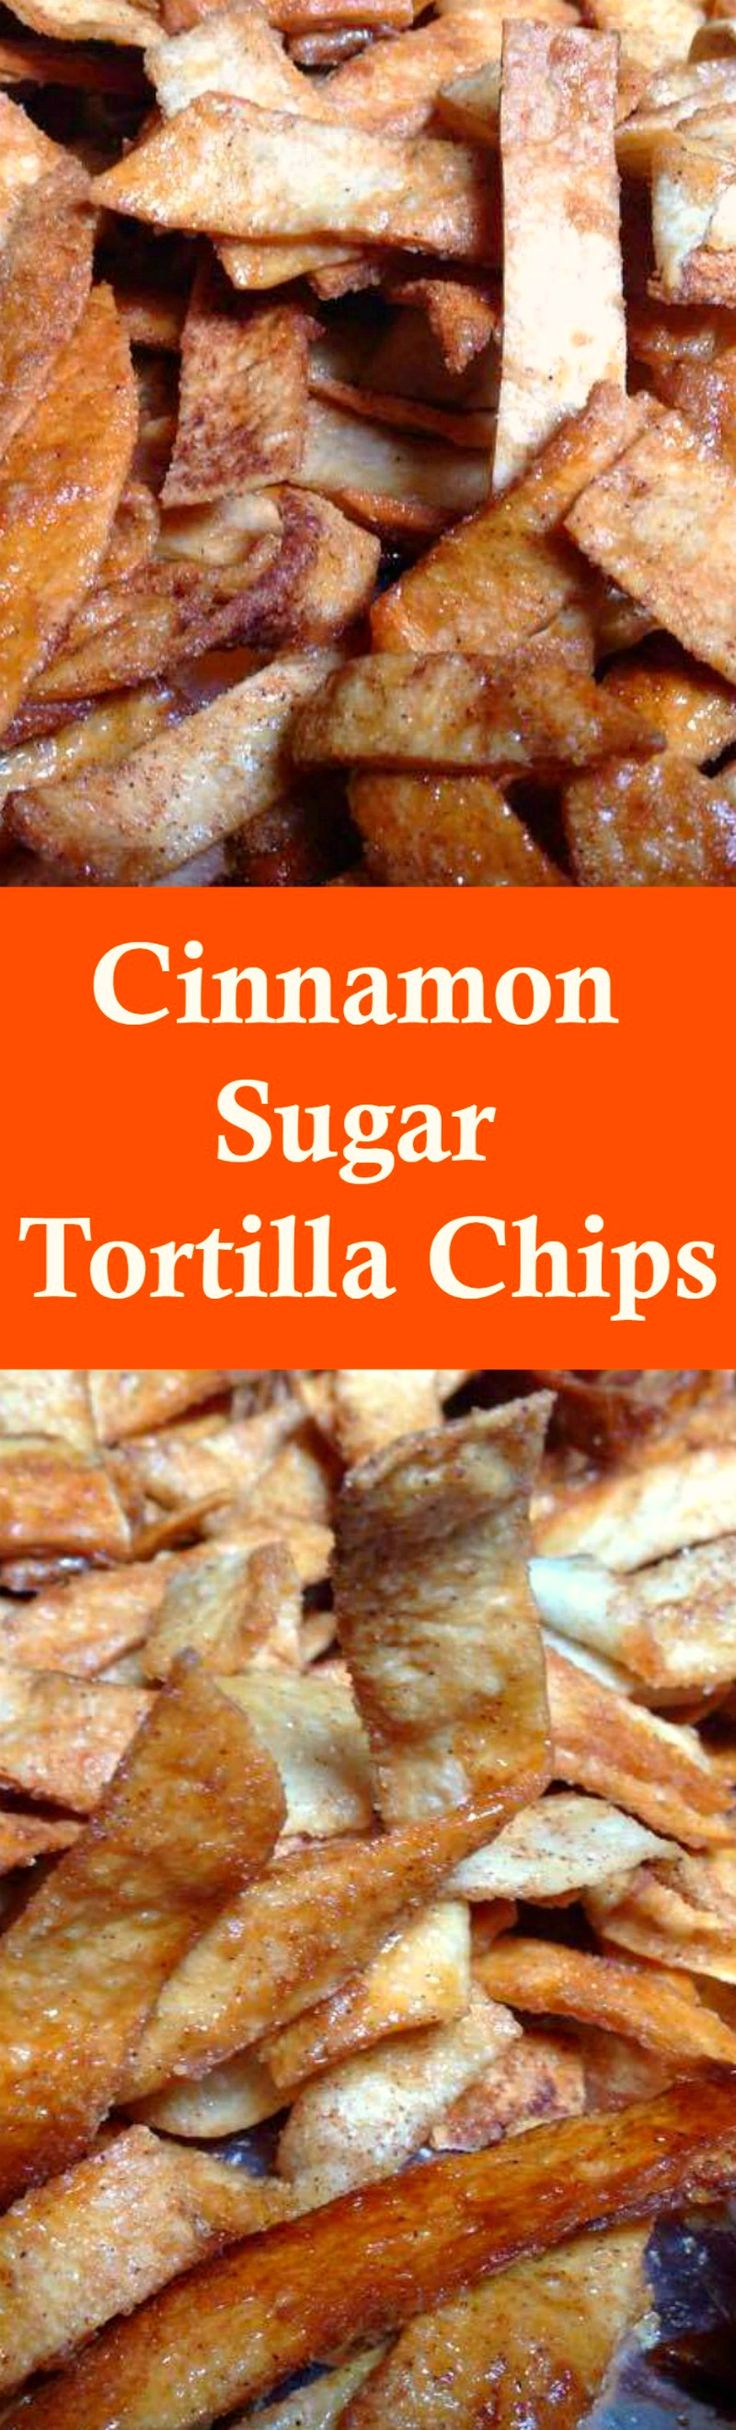 Cinnamon Sugar Tortilla Chips! So good! | Lovefoodies.com